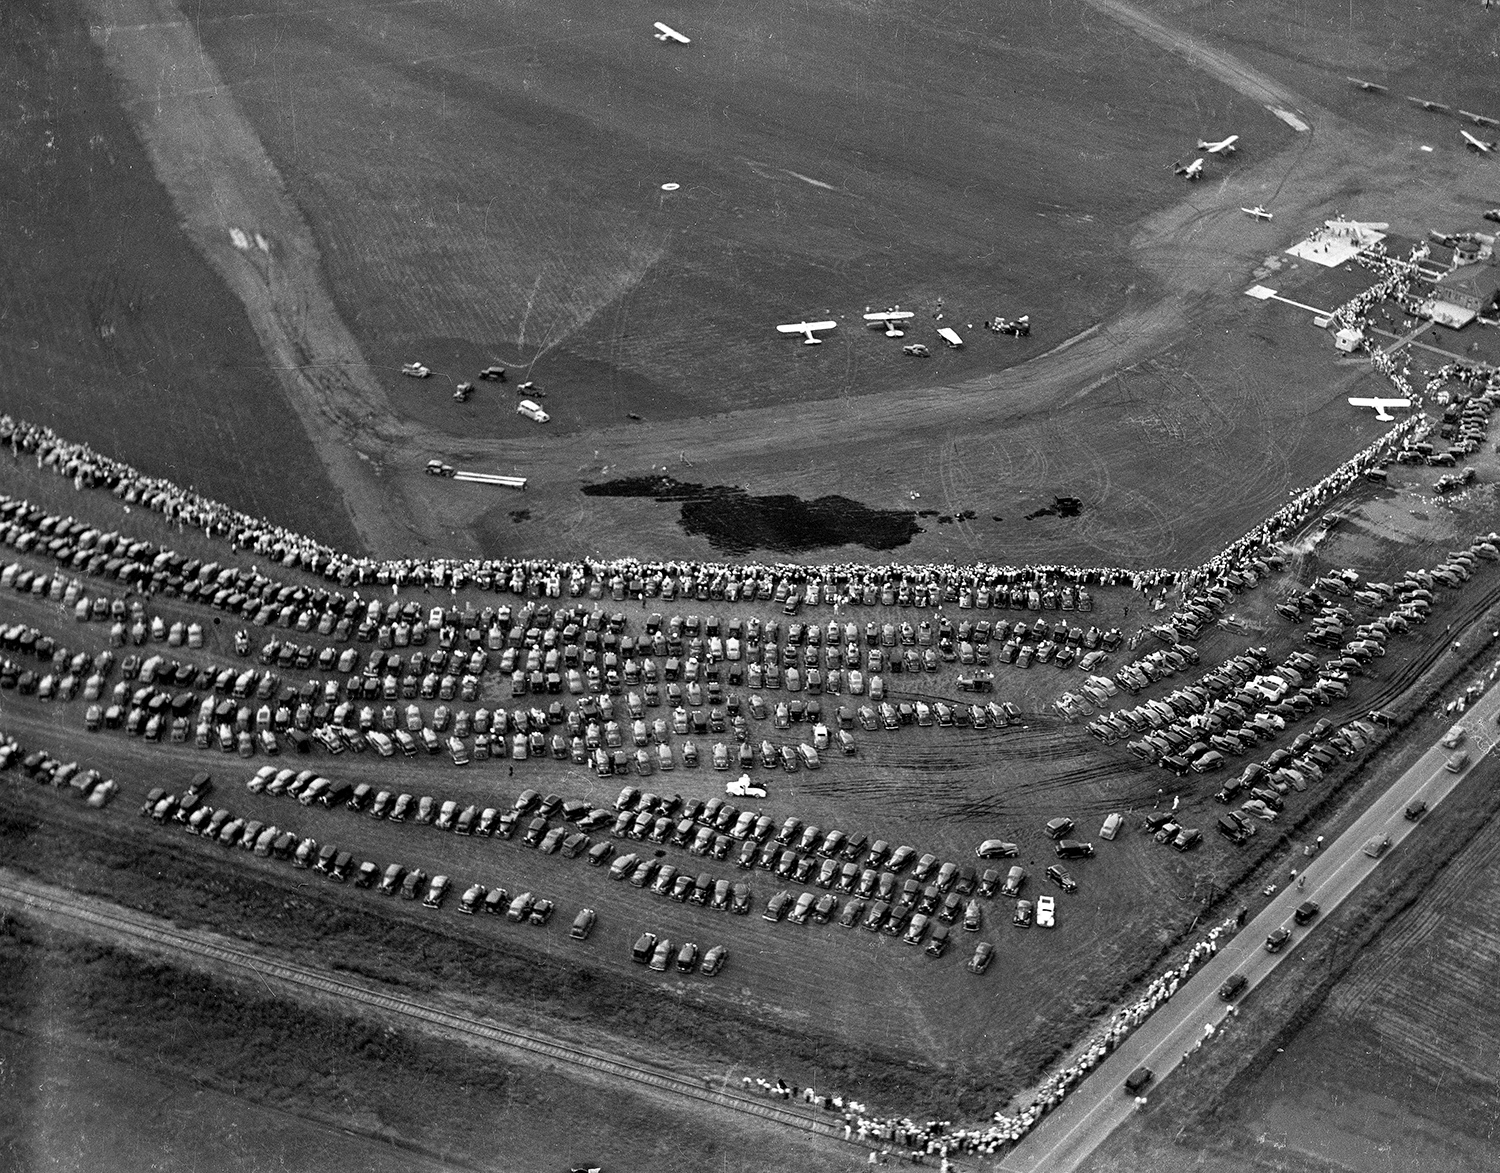 An air show at the municipal airport drew a crowd June 12, 1938. Chatham road is in the lower right corner of the picture. File/The State Journal-Register